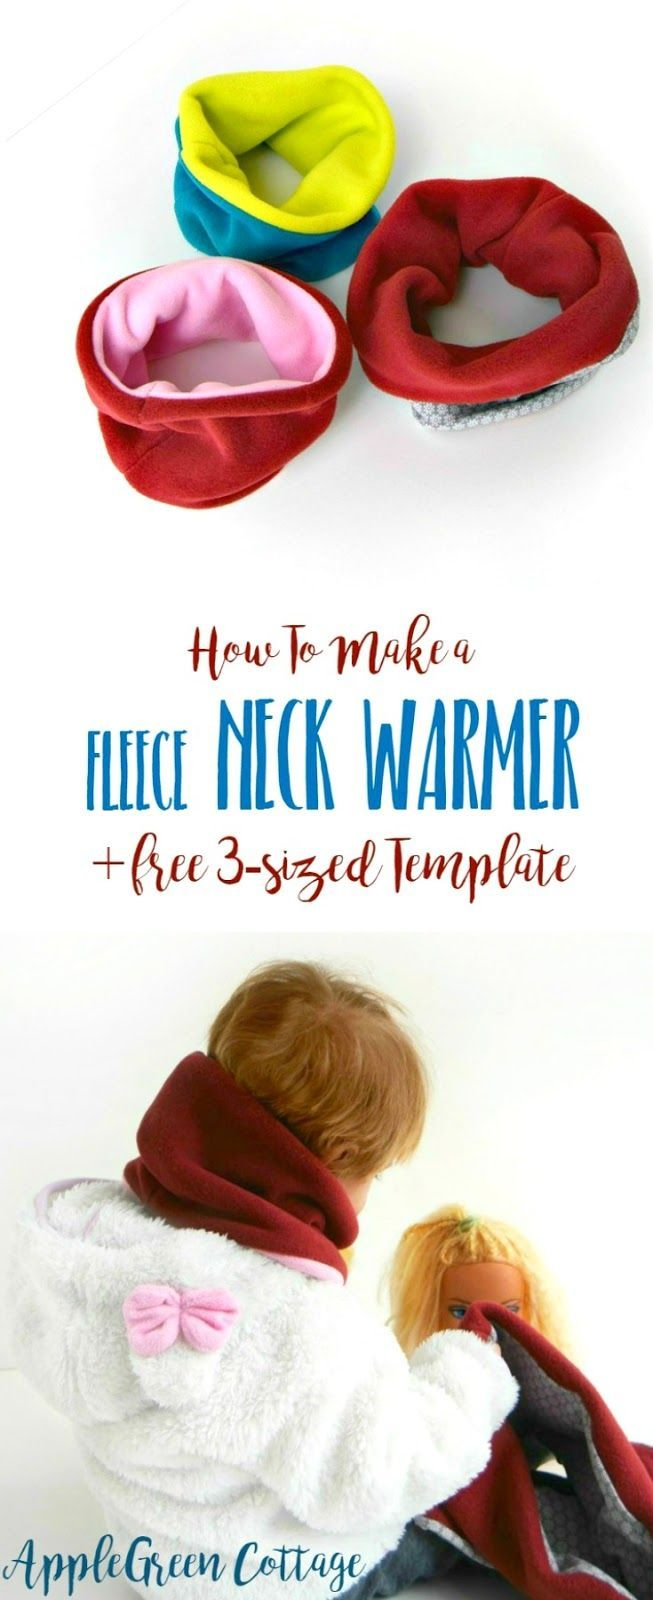 Fleece neck warmer tutorial: this easy beginner sewing tutorial will teach you how to make a warm and cozy reversible fleece neck warmer. And here's a free 3-sized template for you to avoid guessing and to make this cowl scarf a quick and easy-sew.